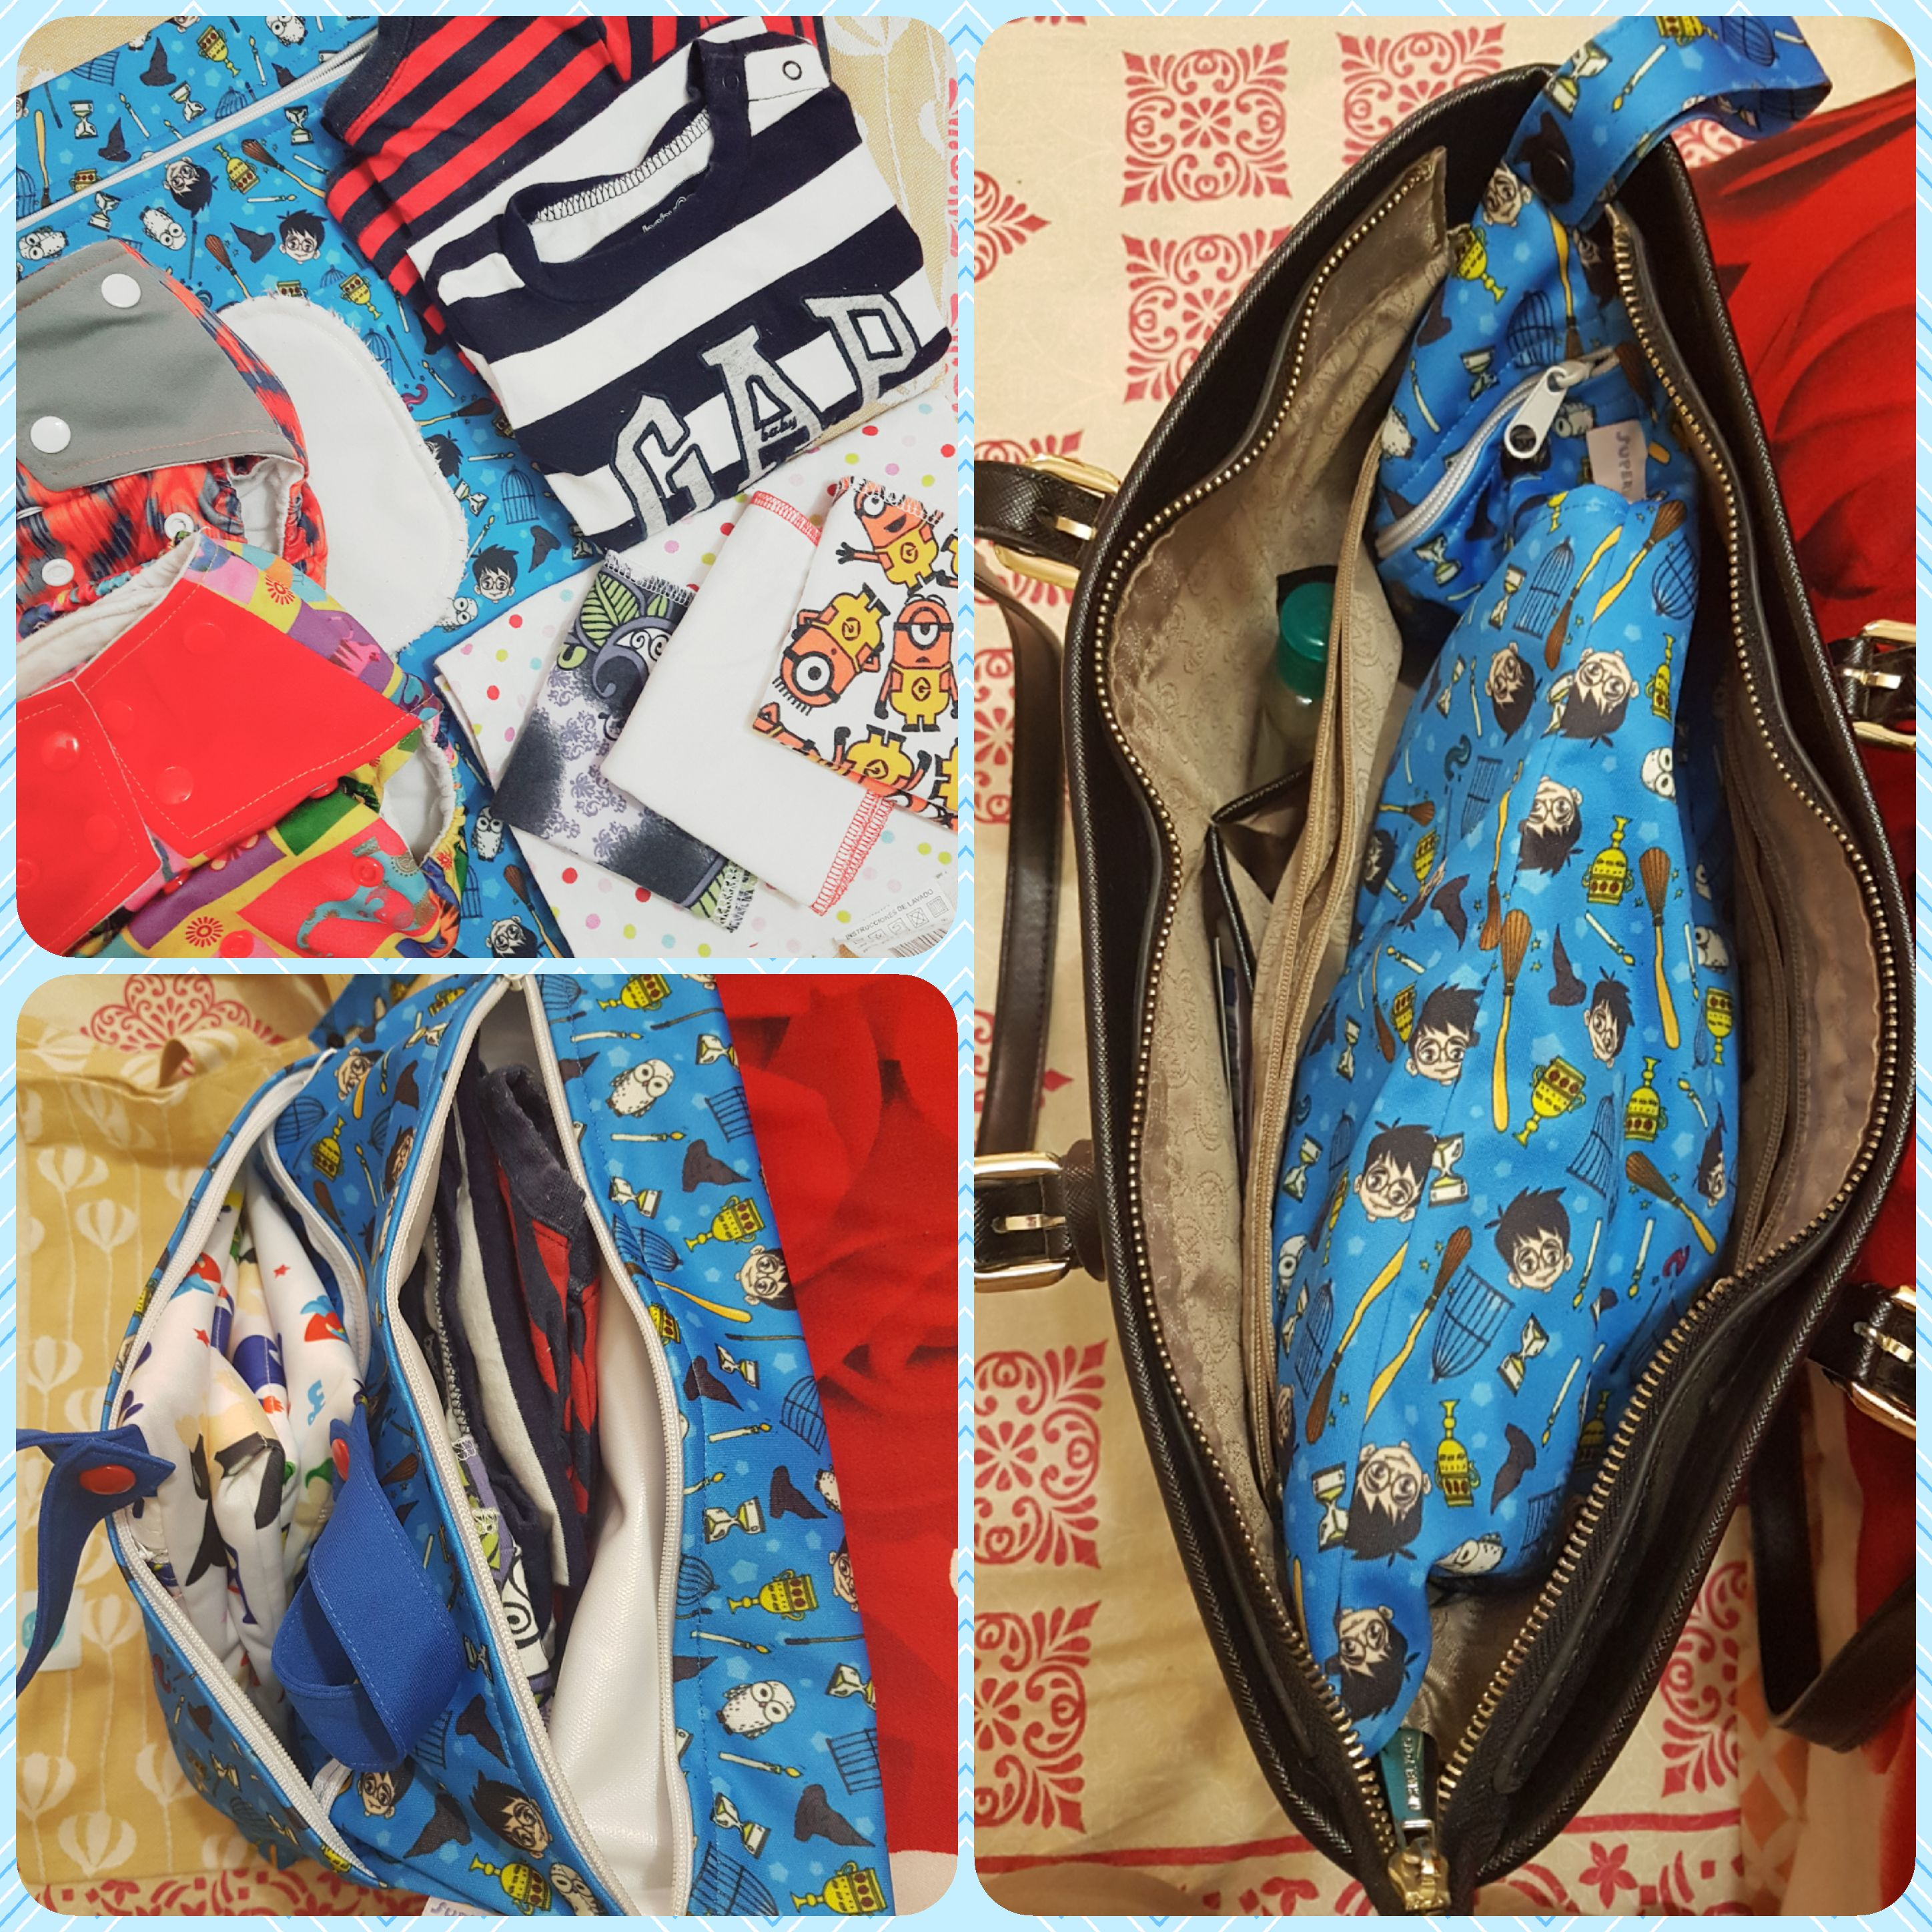 Superbottoms wet bags, wet bag, wetbags, diaper bag, whats in your diaper bag, cloth diaper bag, cloth diapering, cloth diapers india, new mom, mumbai mom